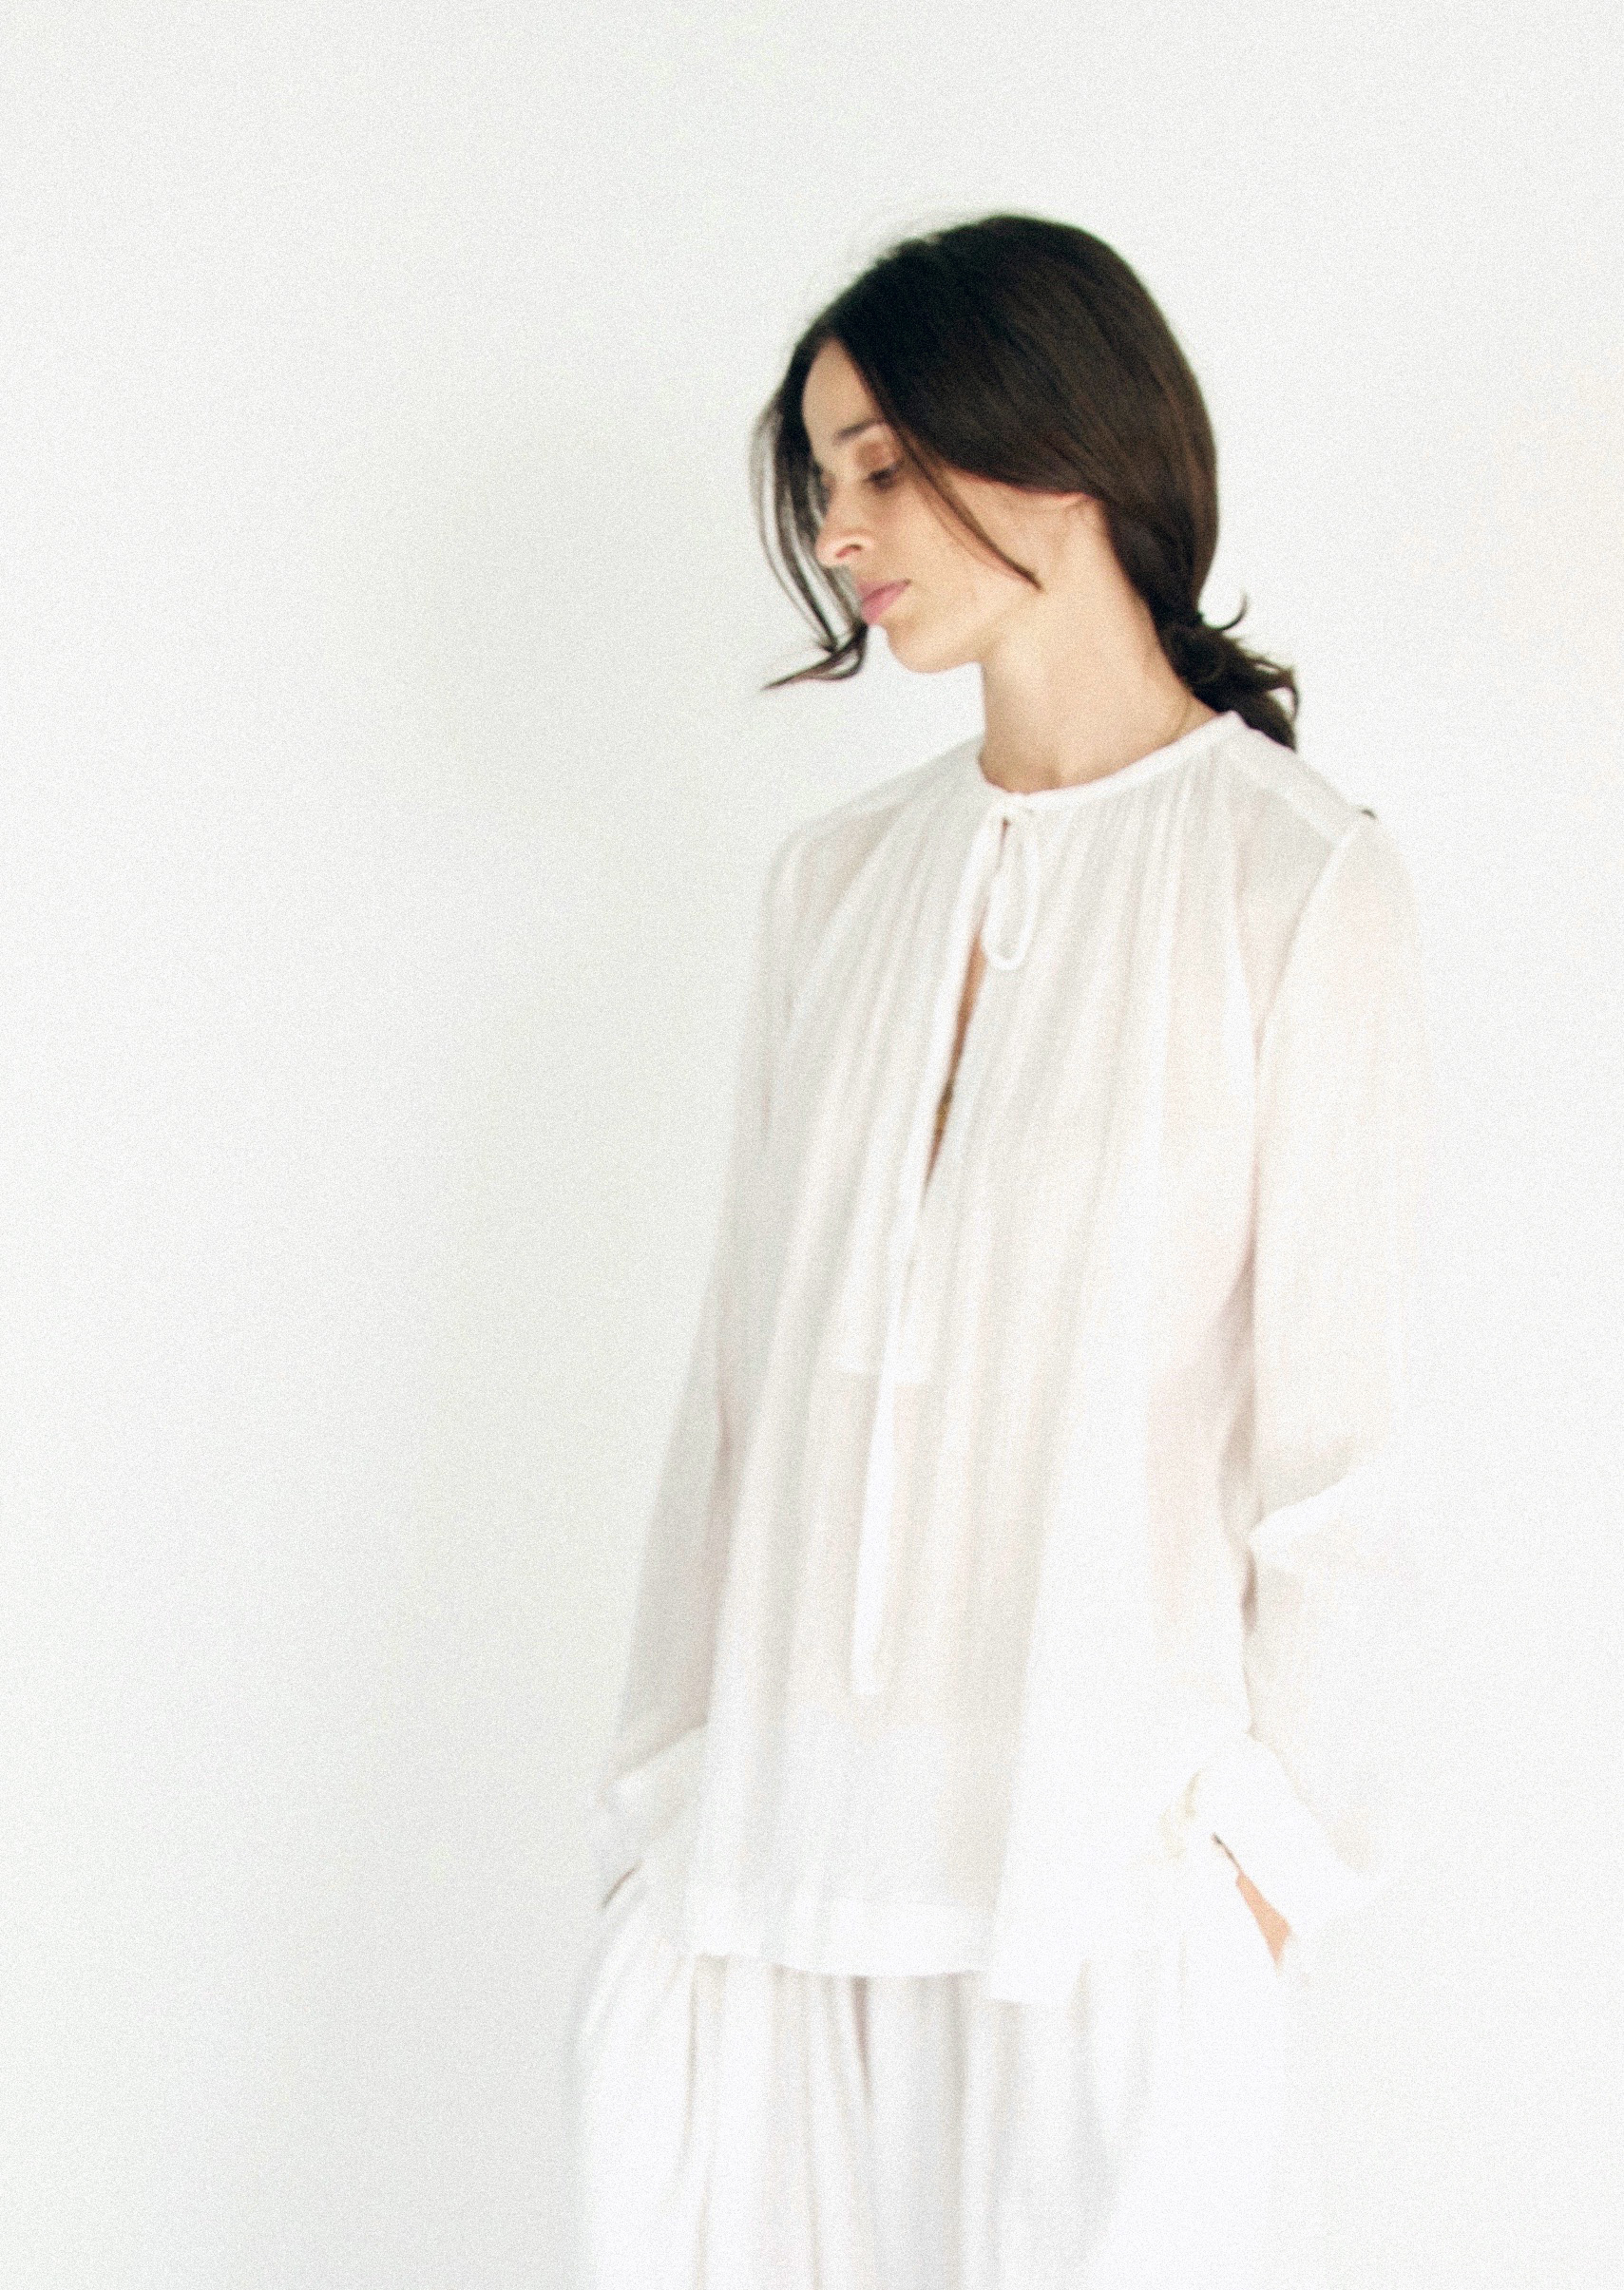 Narelle wears the Tie Neck Blouse